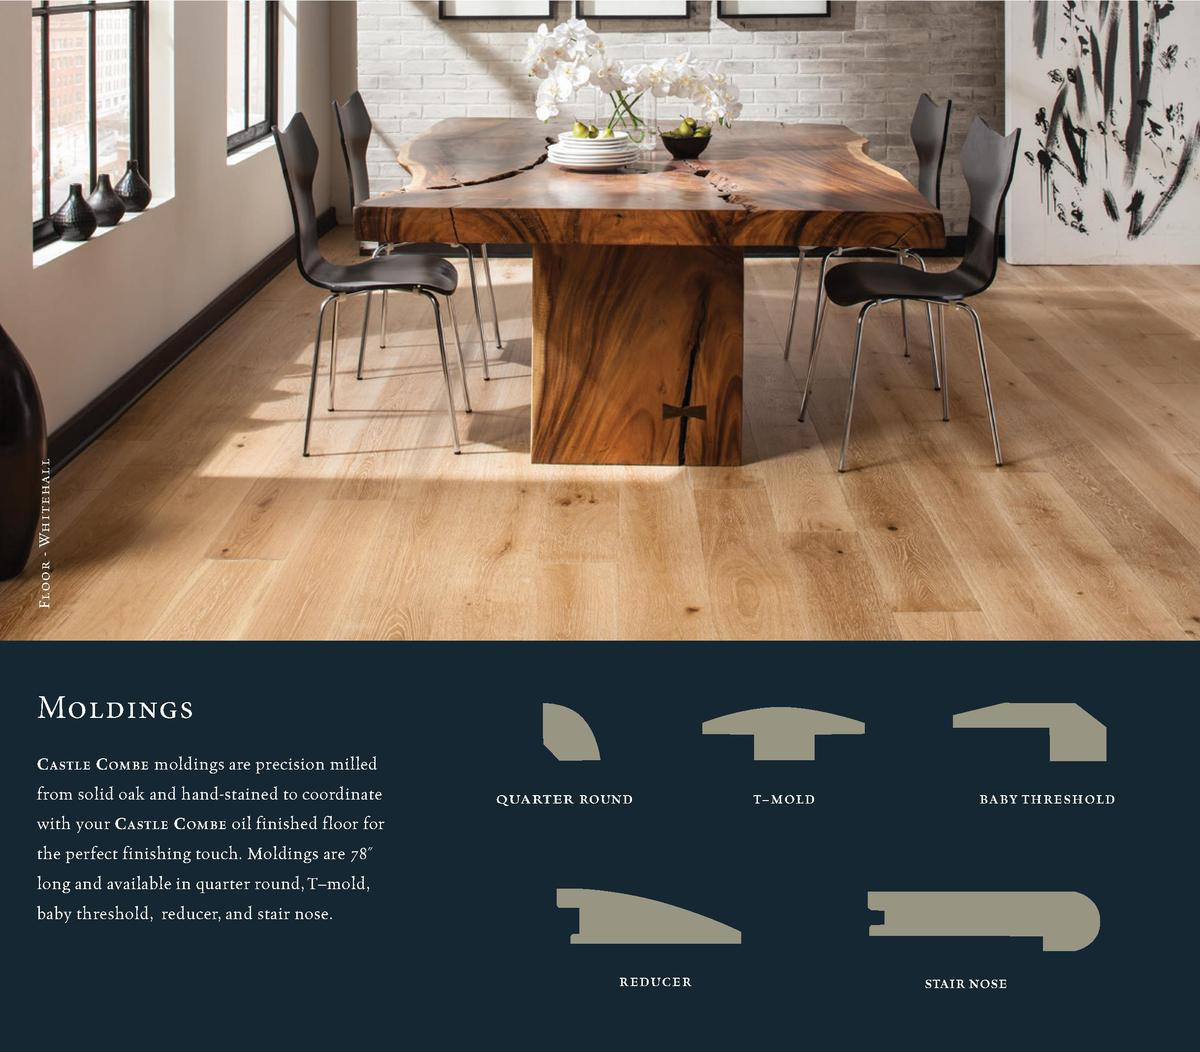 Floor - Whitehall  Moldings C astle C ombe moldings are precision milled from solid oak and hand-stained to coordinate  QU...